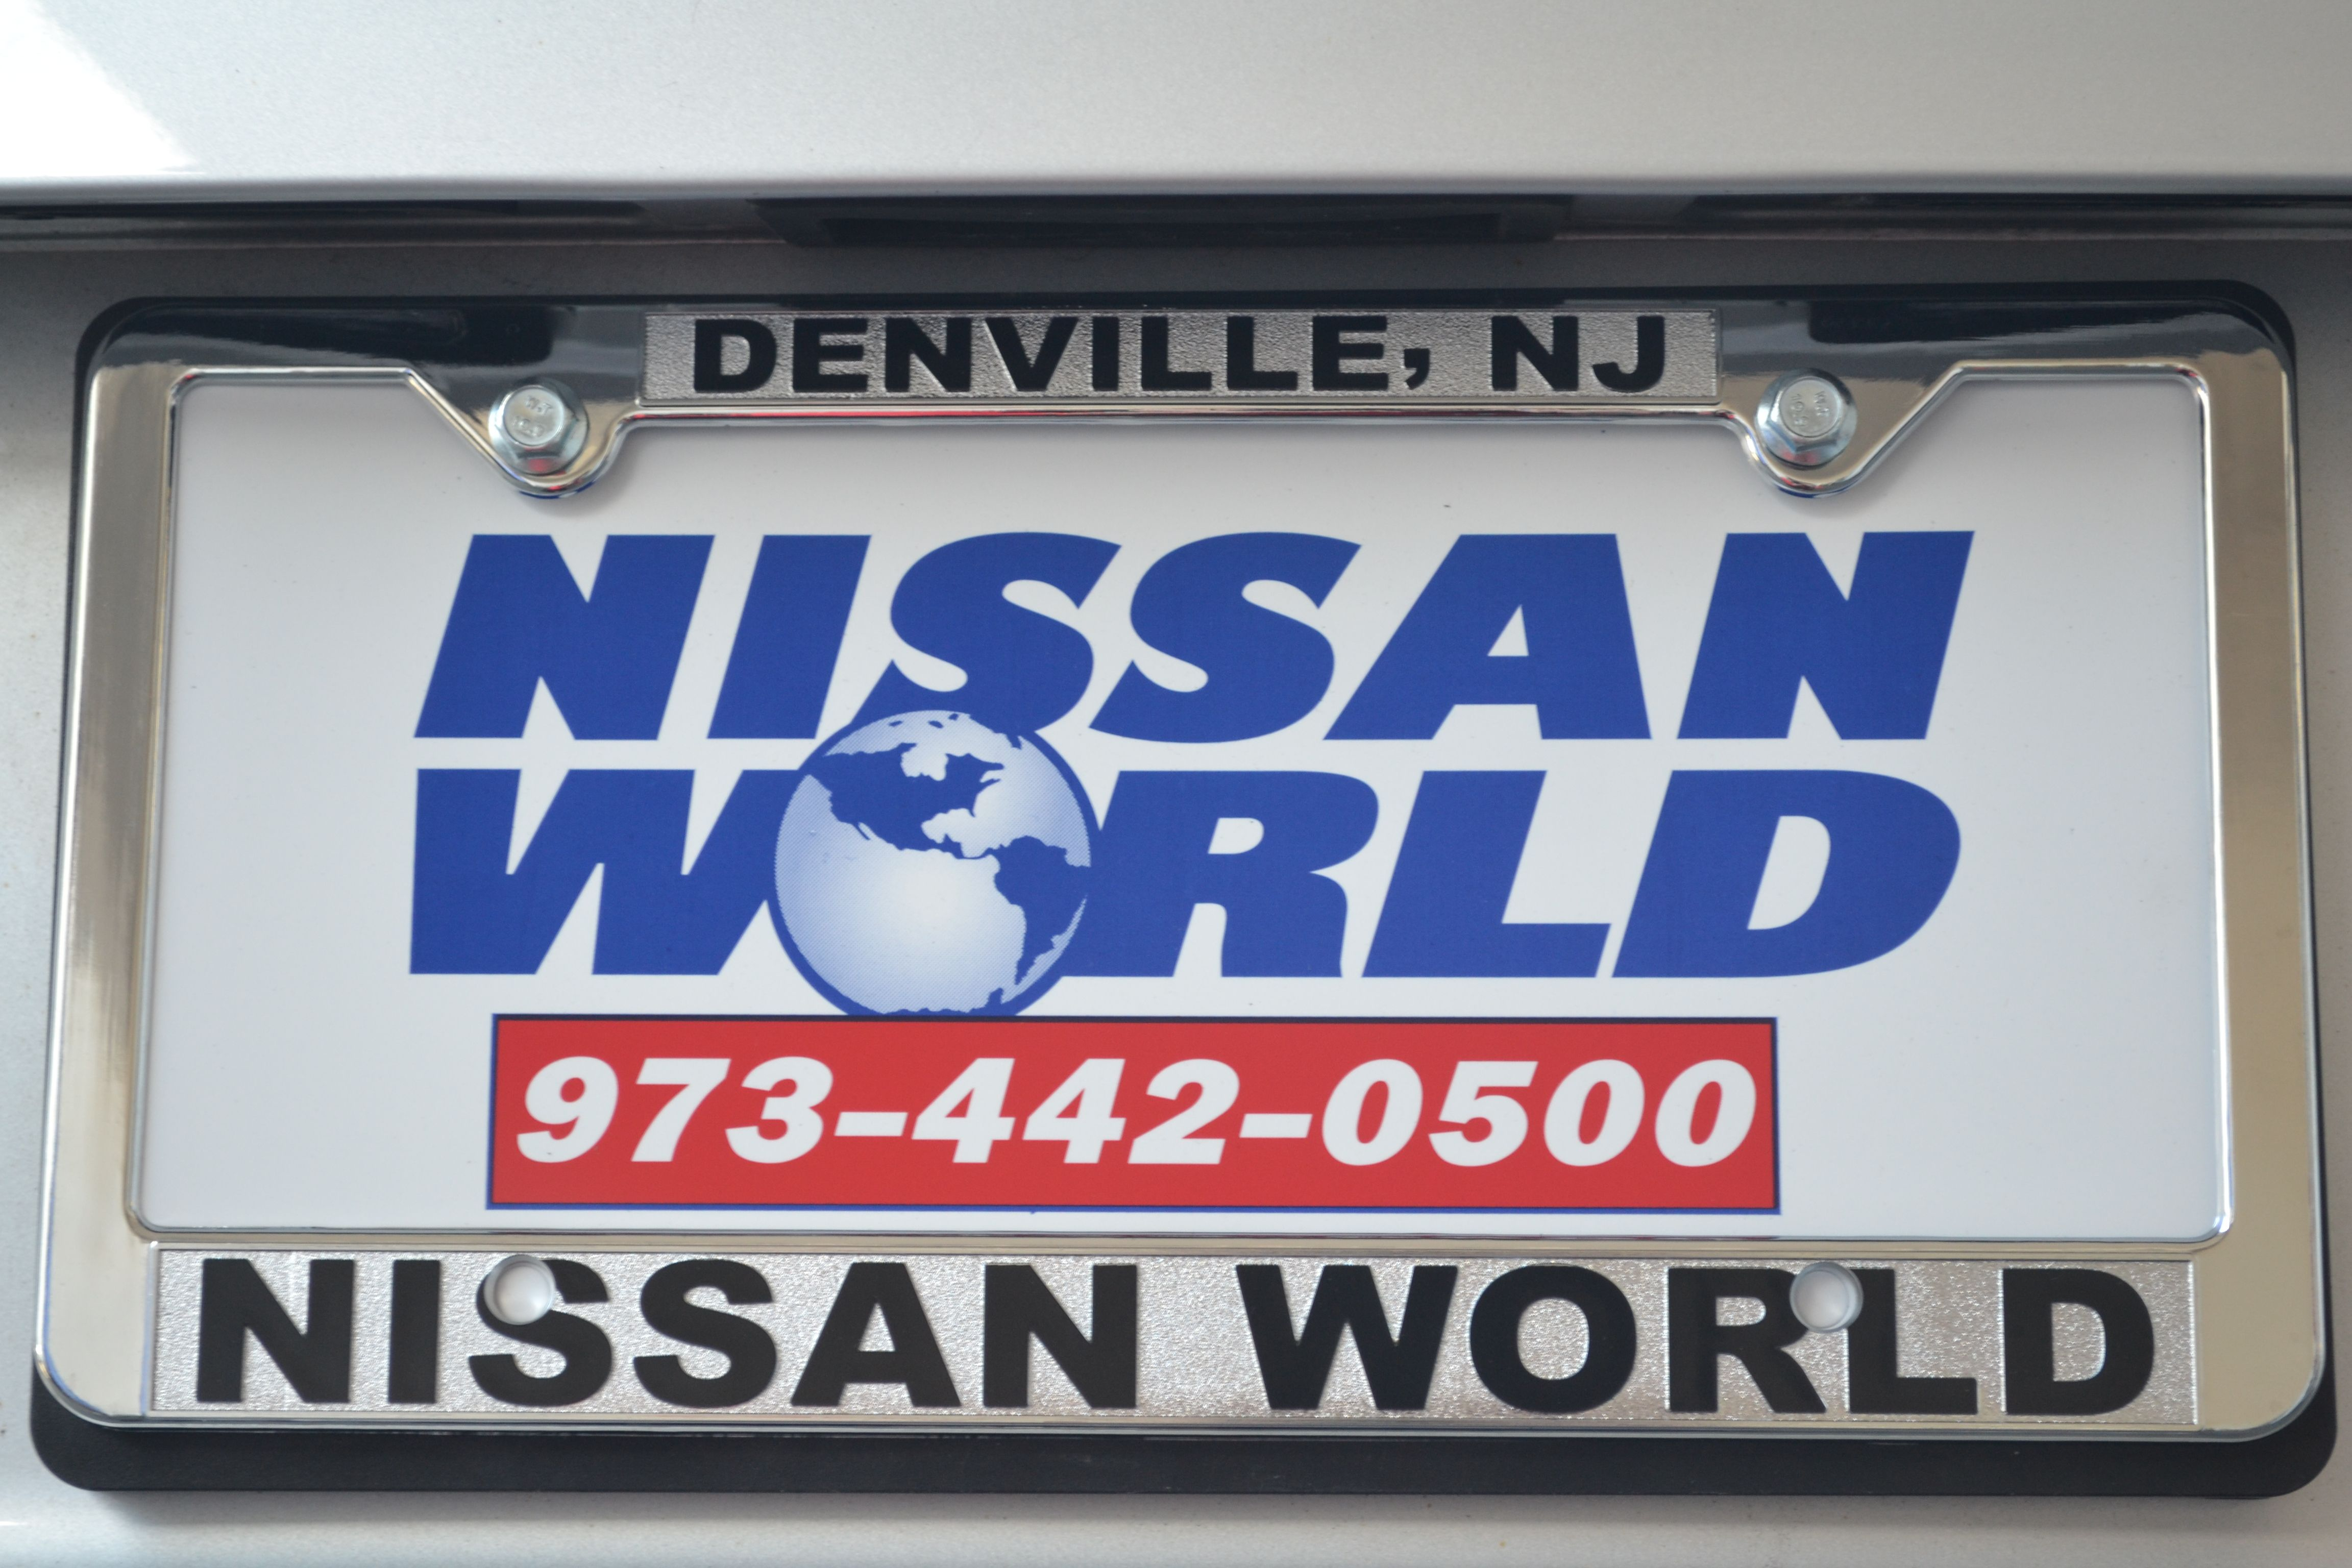 nissan world of denville http denvillenissan com nissan dealership car dealership pinterest